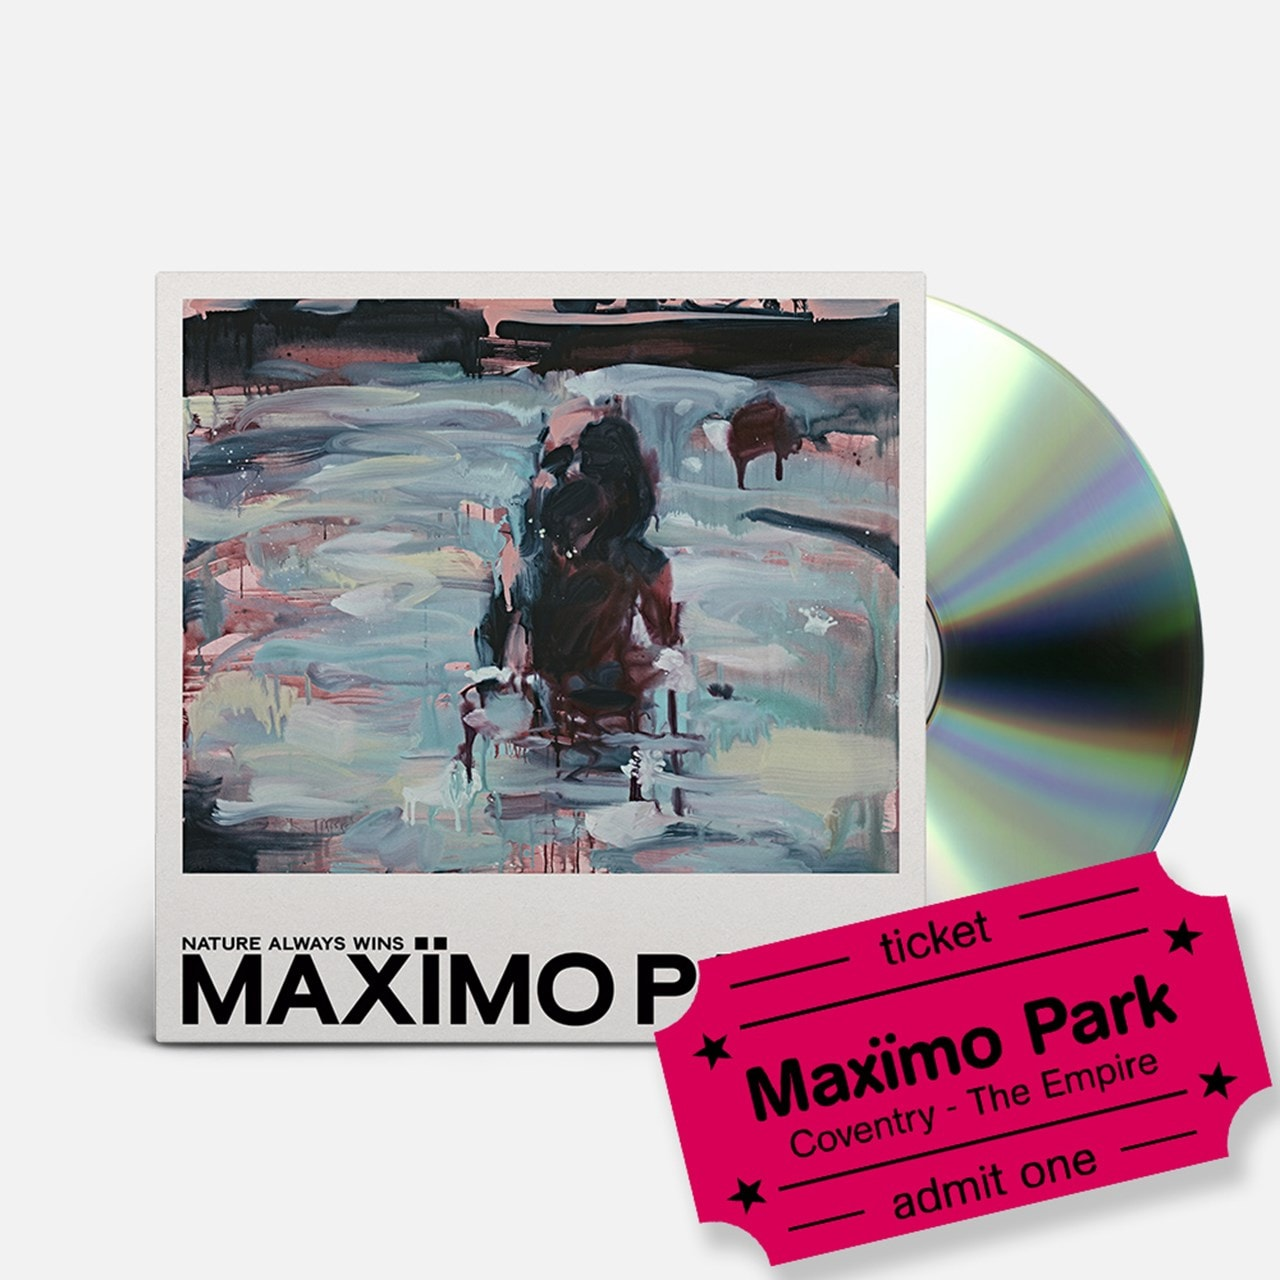 Maximo Park - Nature Always Wins - CD & Coventry Empire Event Entry - 1